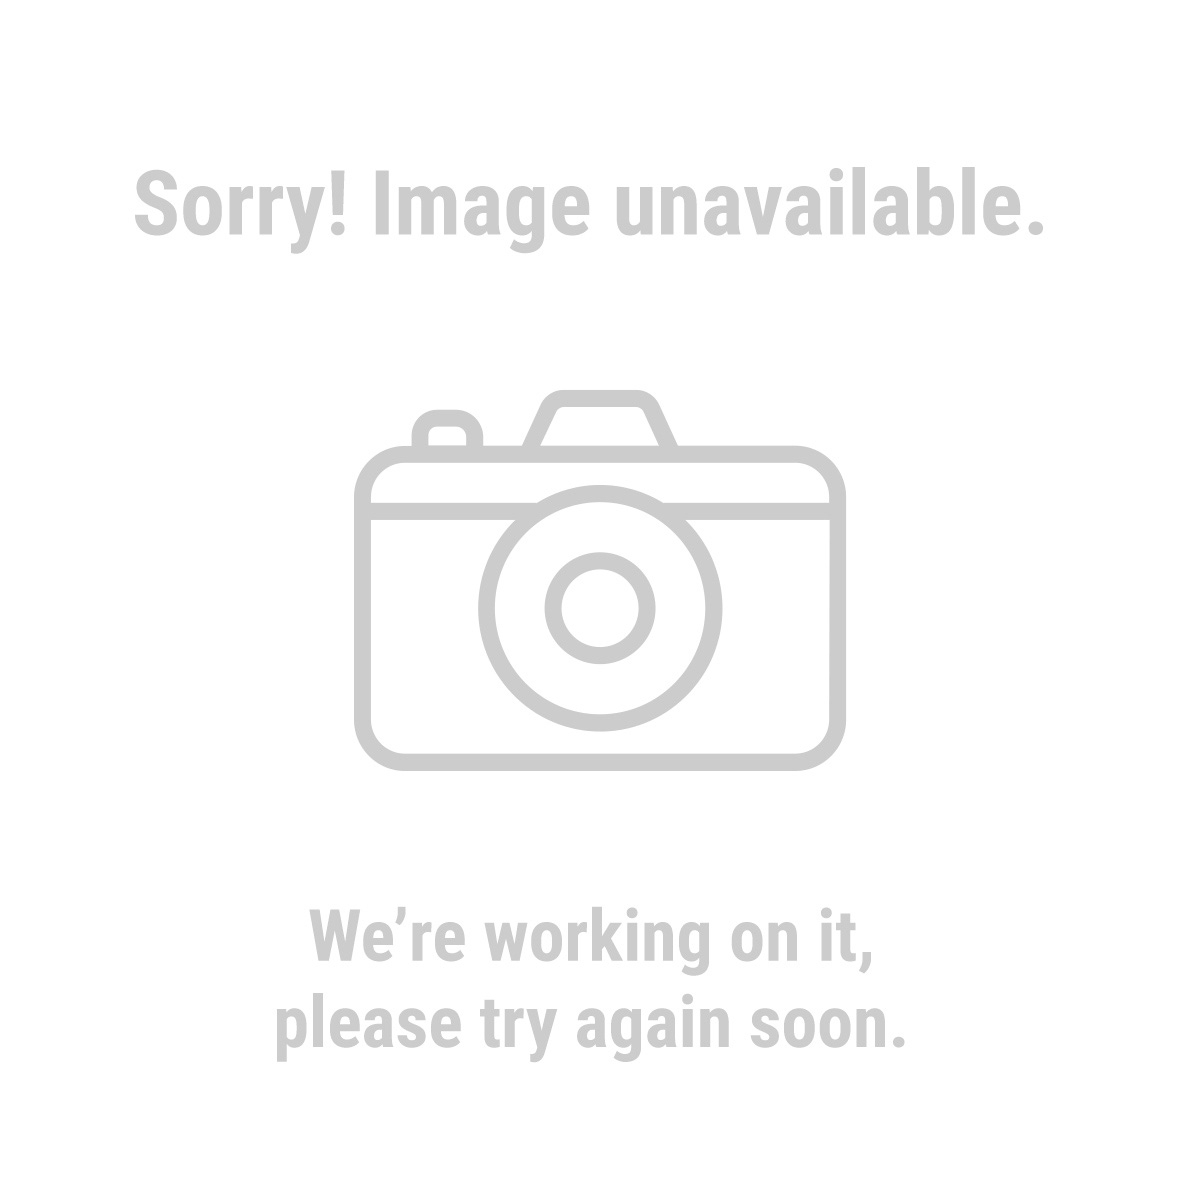 61757 5 in. Solid Polyurethane N/A Caster